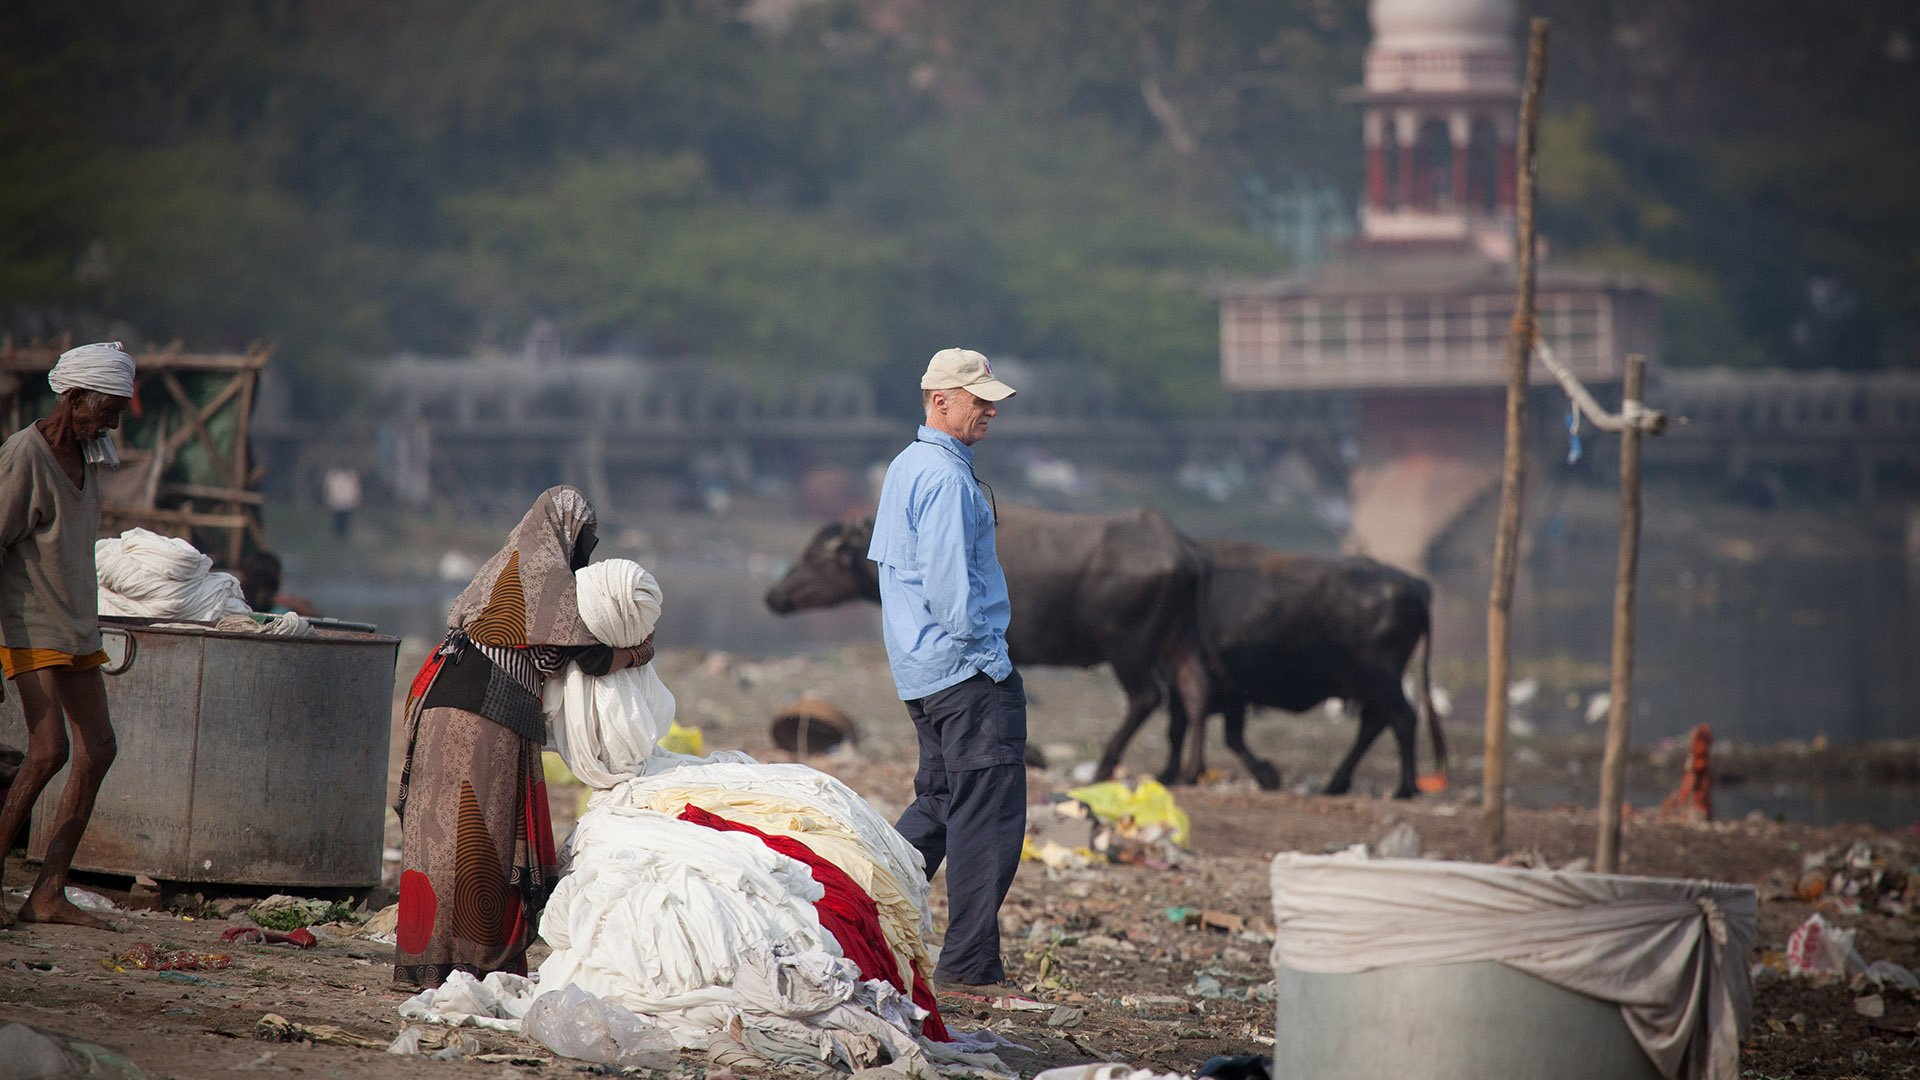 https://spatulamedia.ca/wp-content/uploads/2019/05/mark-at-the-river-in-India.jpg